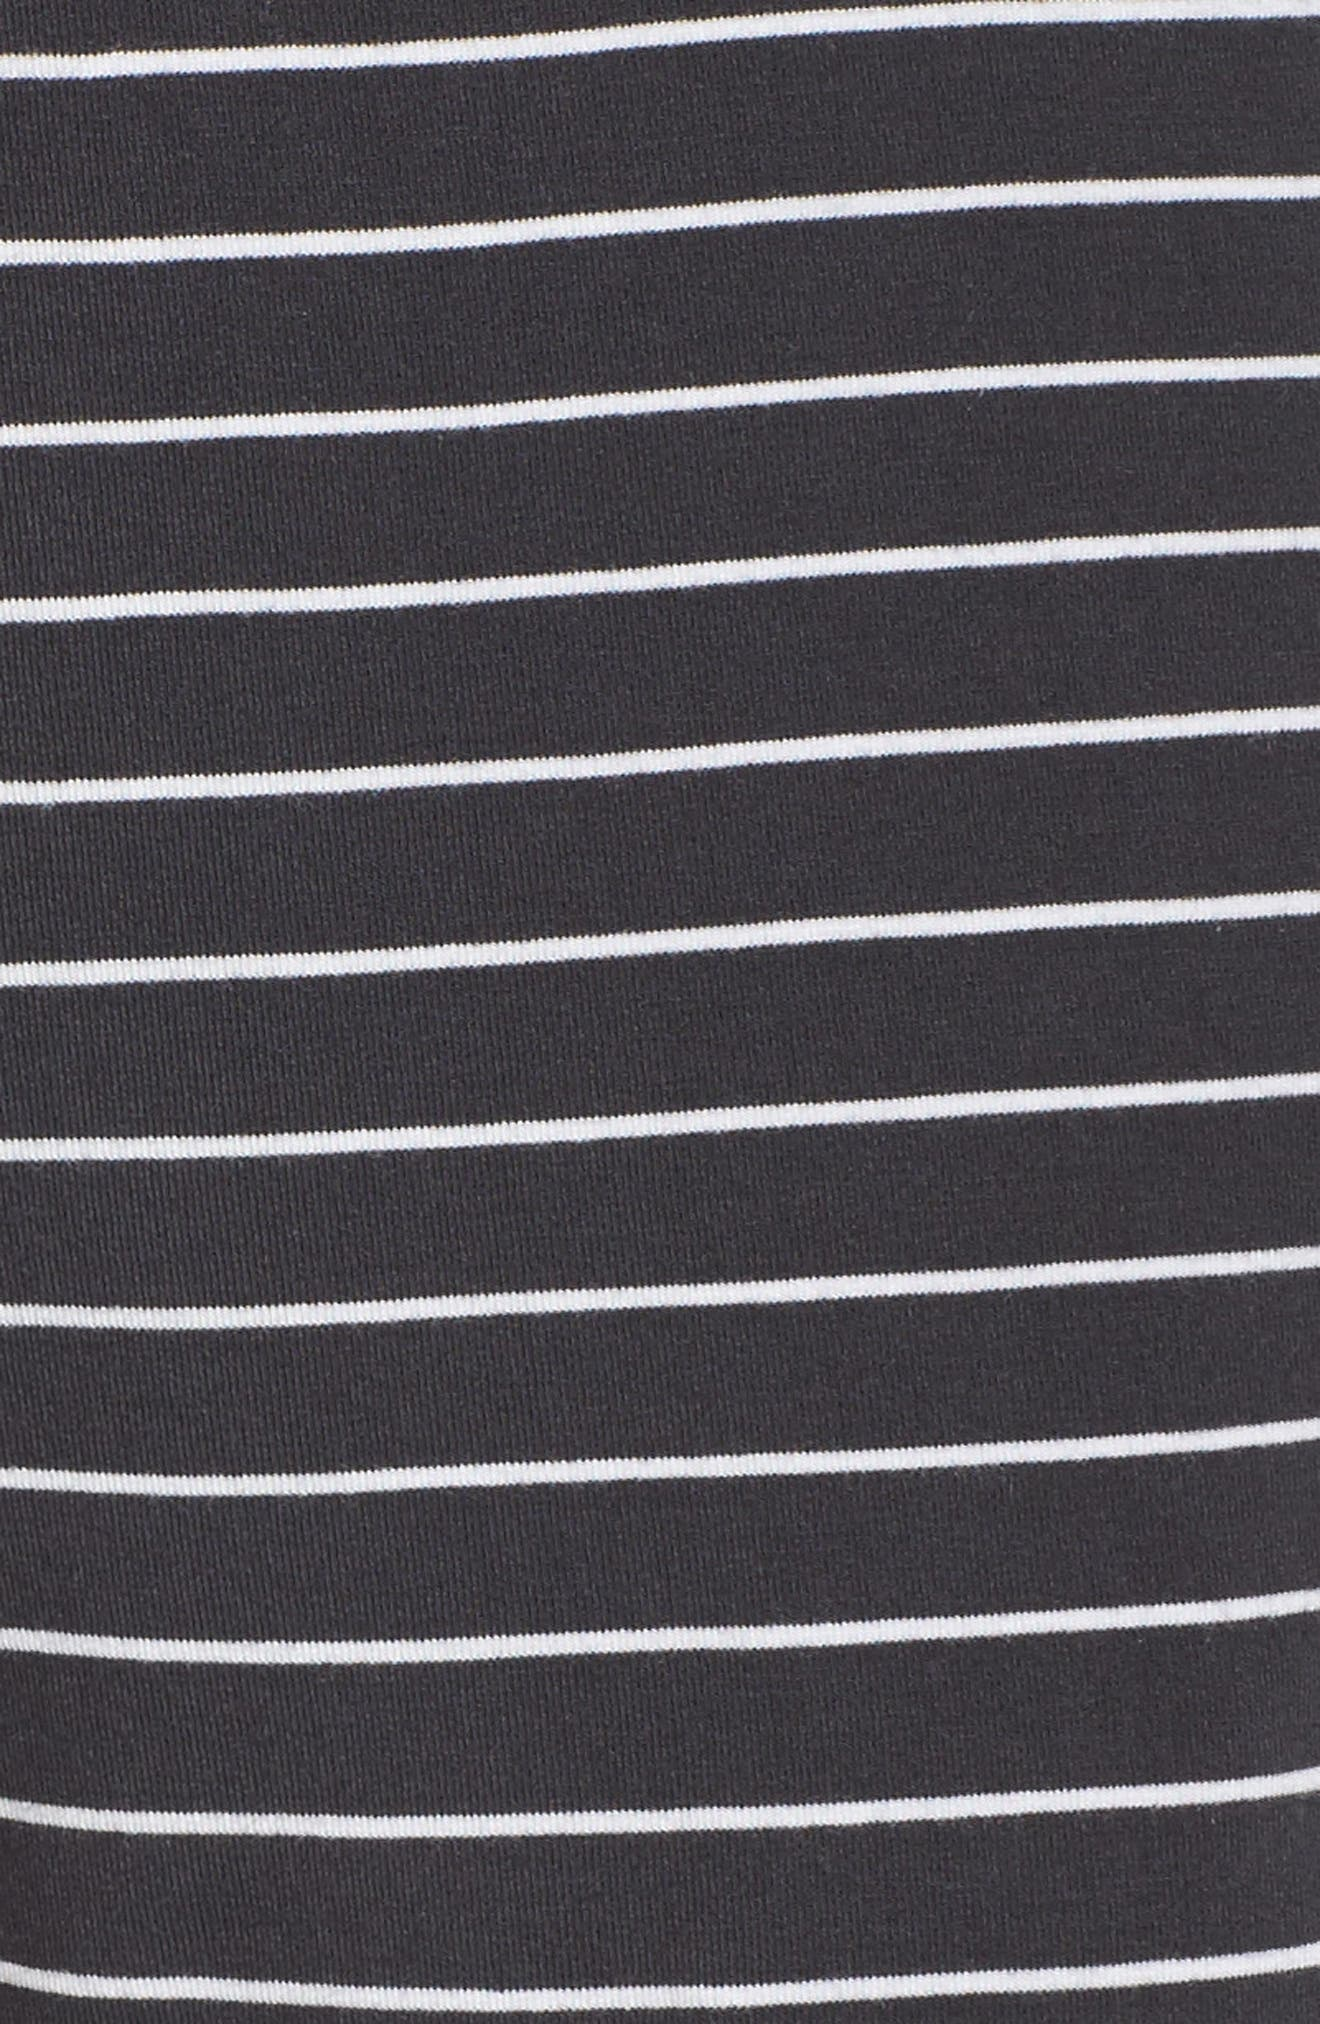 Stripe Jersey Shorts,                             Alternate thumbnail 5, color,                             030